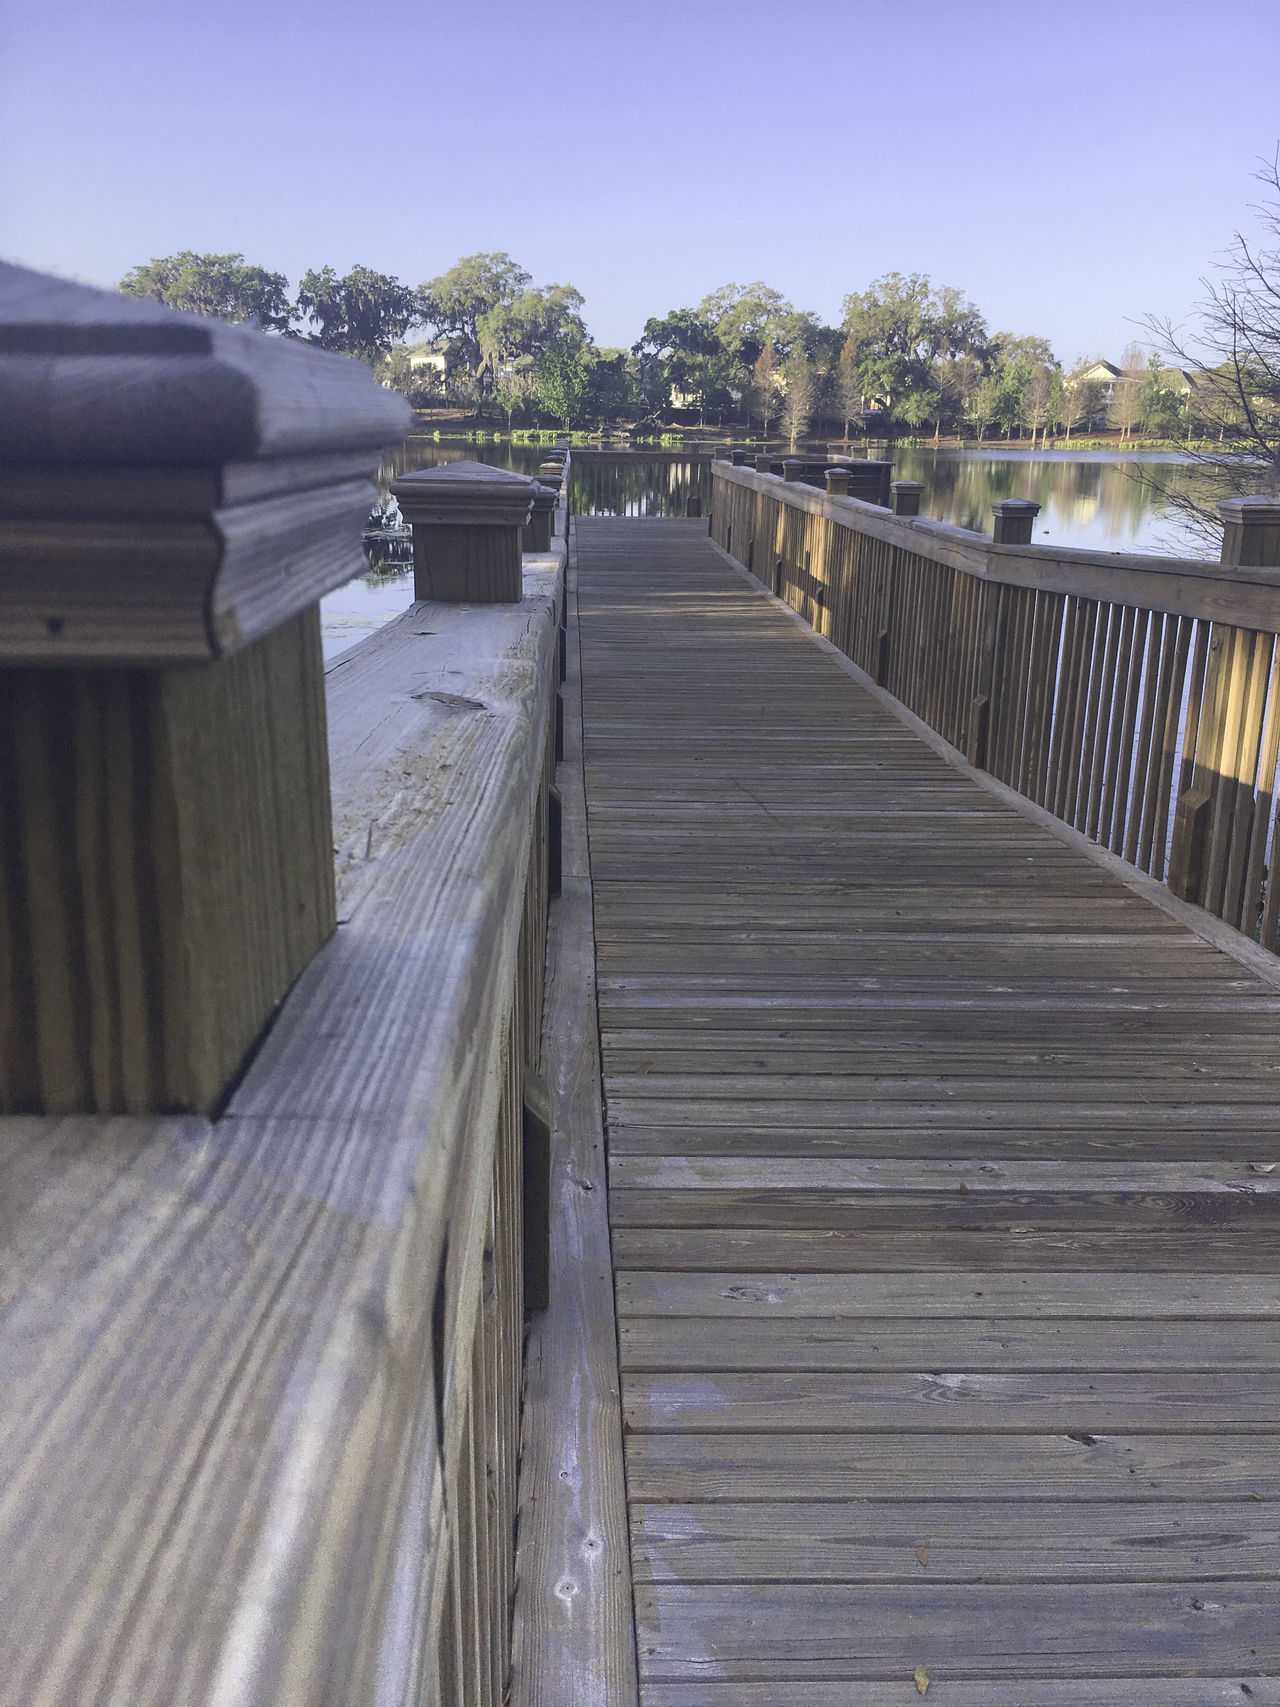 Perspective down the railing Architecture Beauty In Nature Boardwalk Built Structure Day Lines Nature No People Outdoors Perspective Pier Rail Sky The Way Forward Tree Wood - Material Wood Paneling